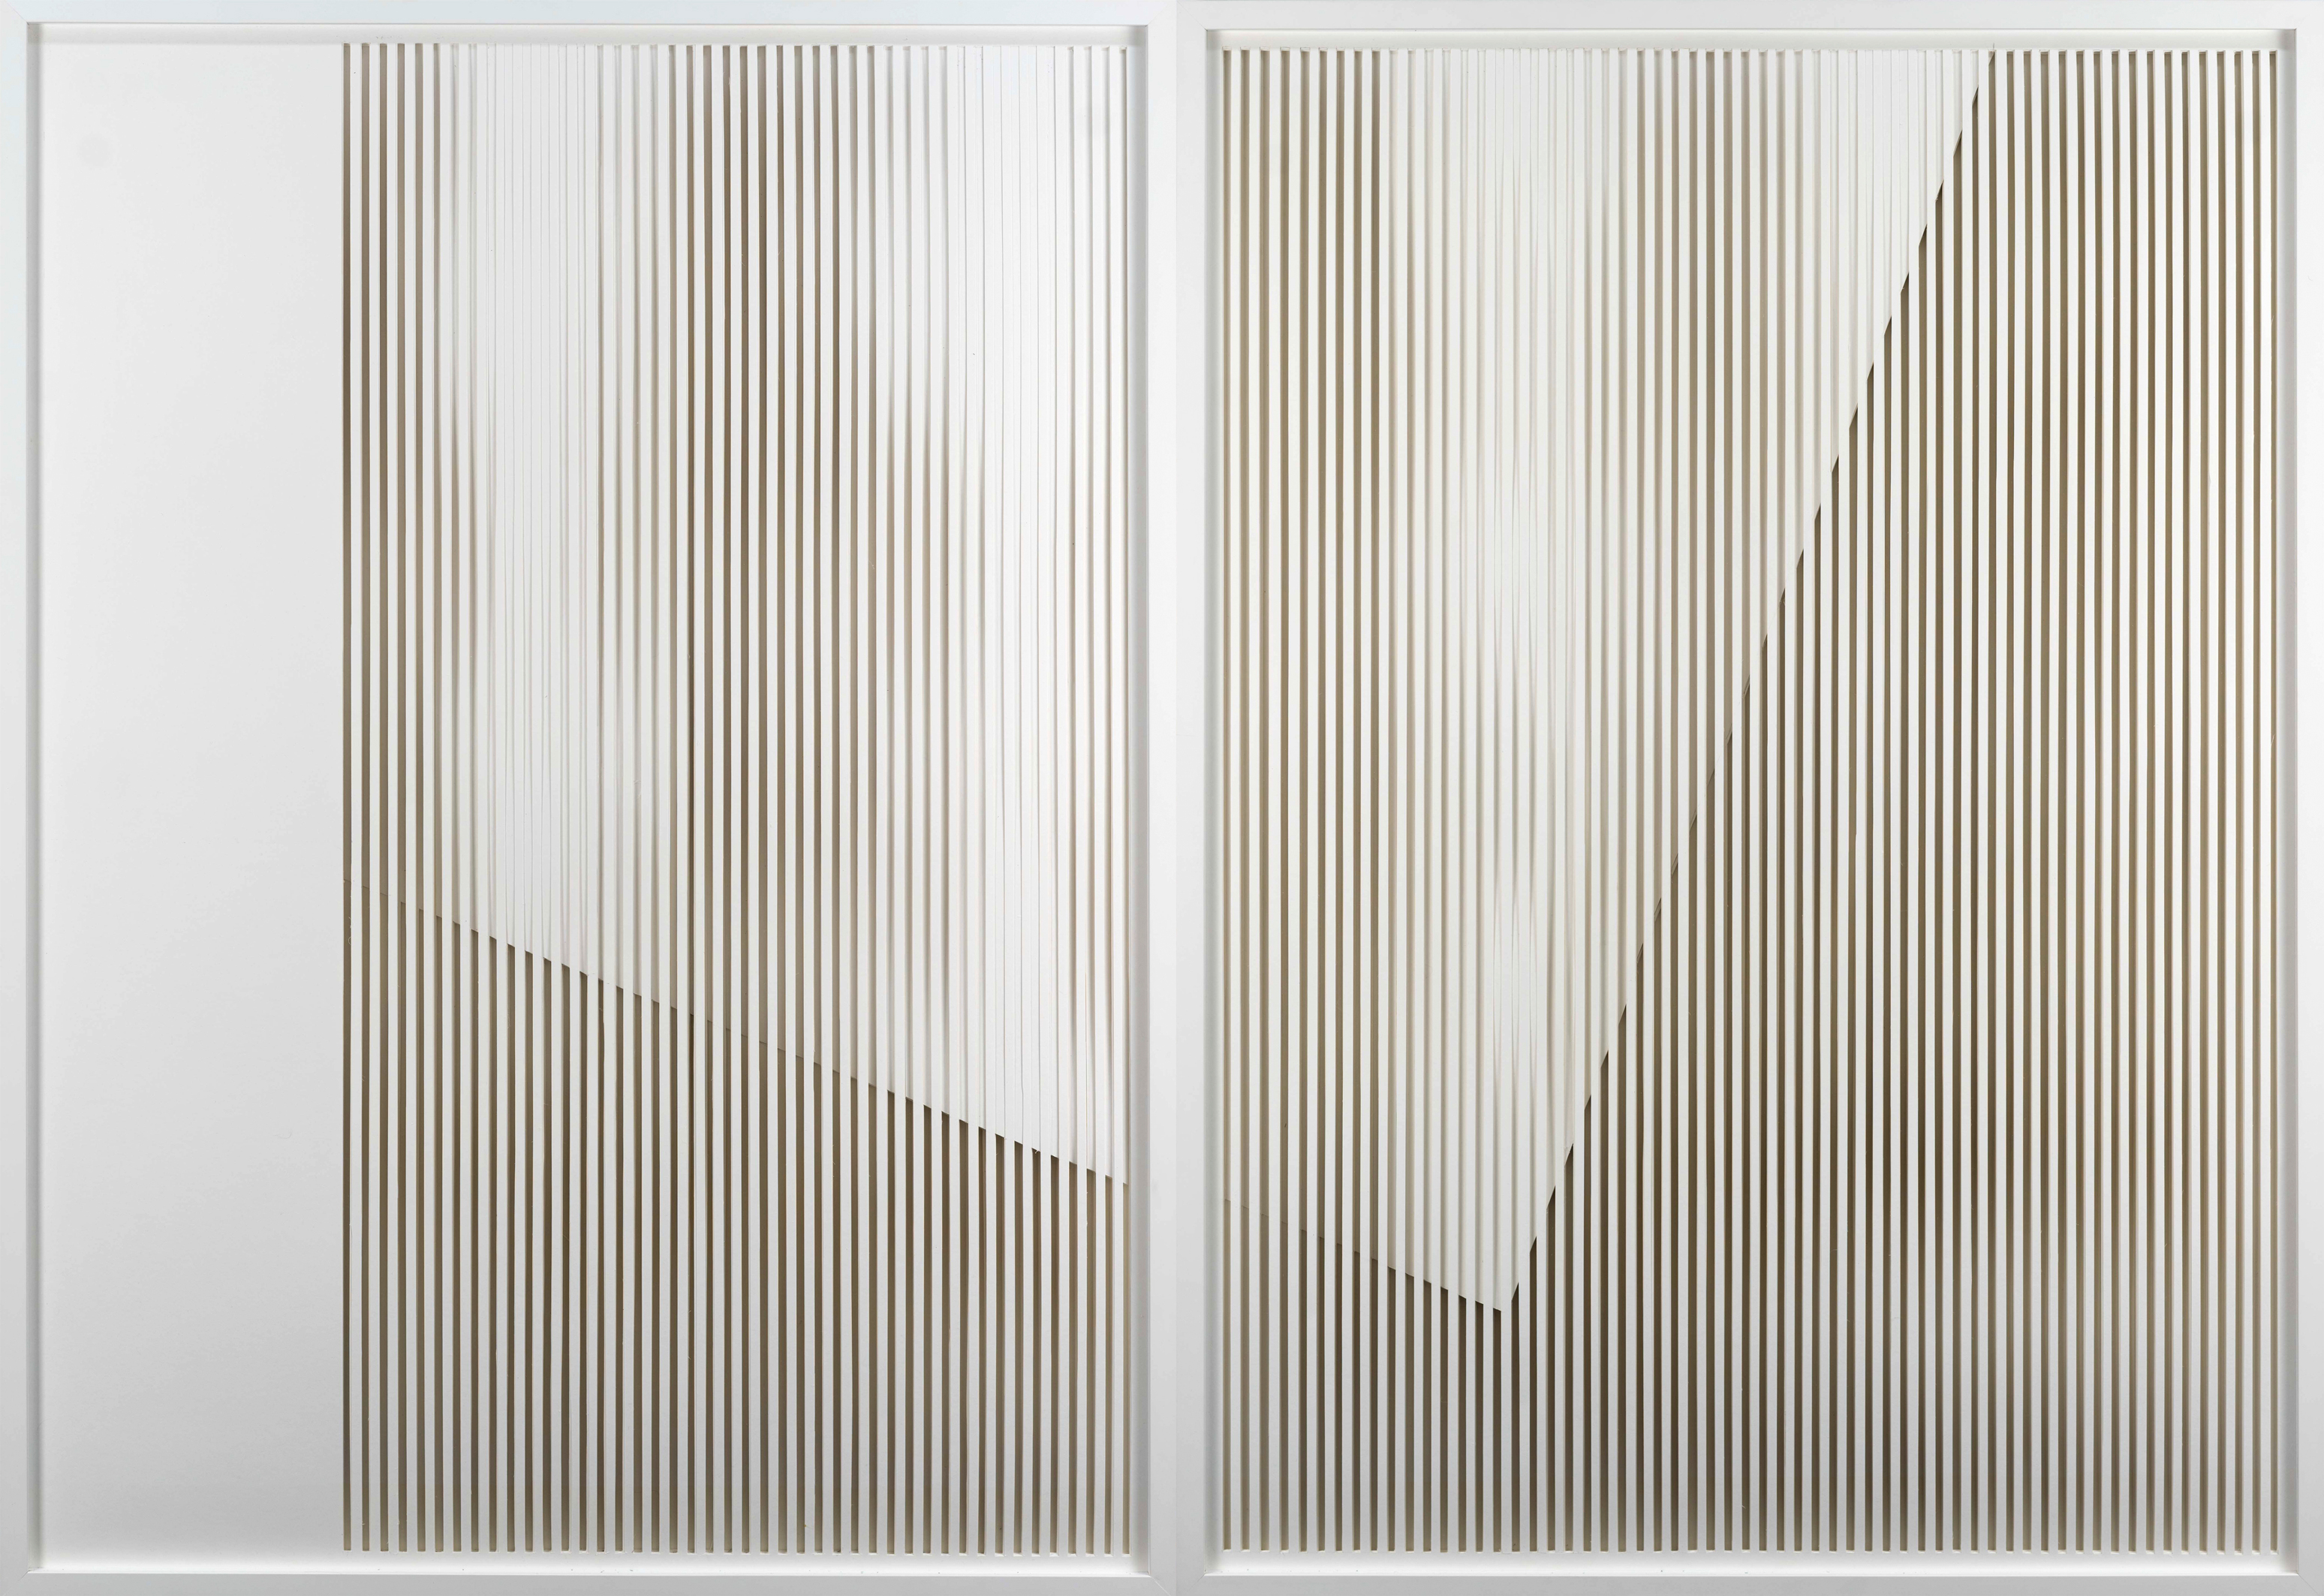 Patricia Westerholz failed filter #01 2018 cut out 140 x 200 x 1,5 cm Foto: Andreas Kempe